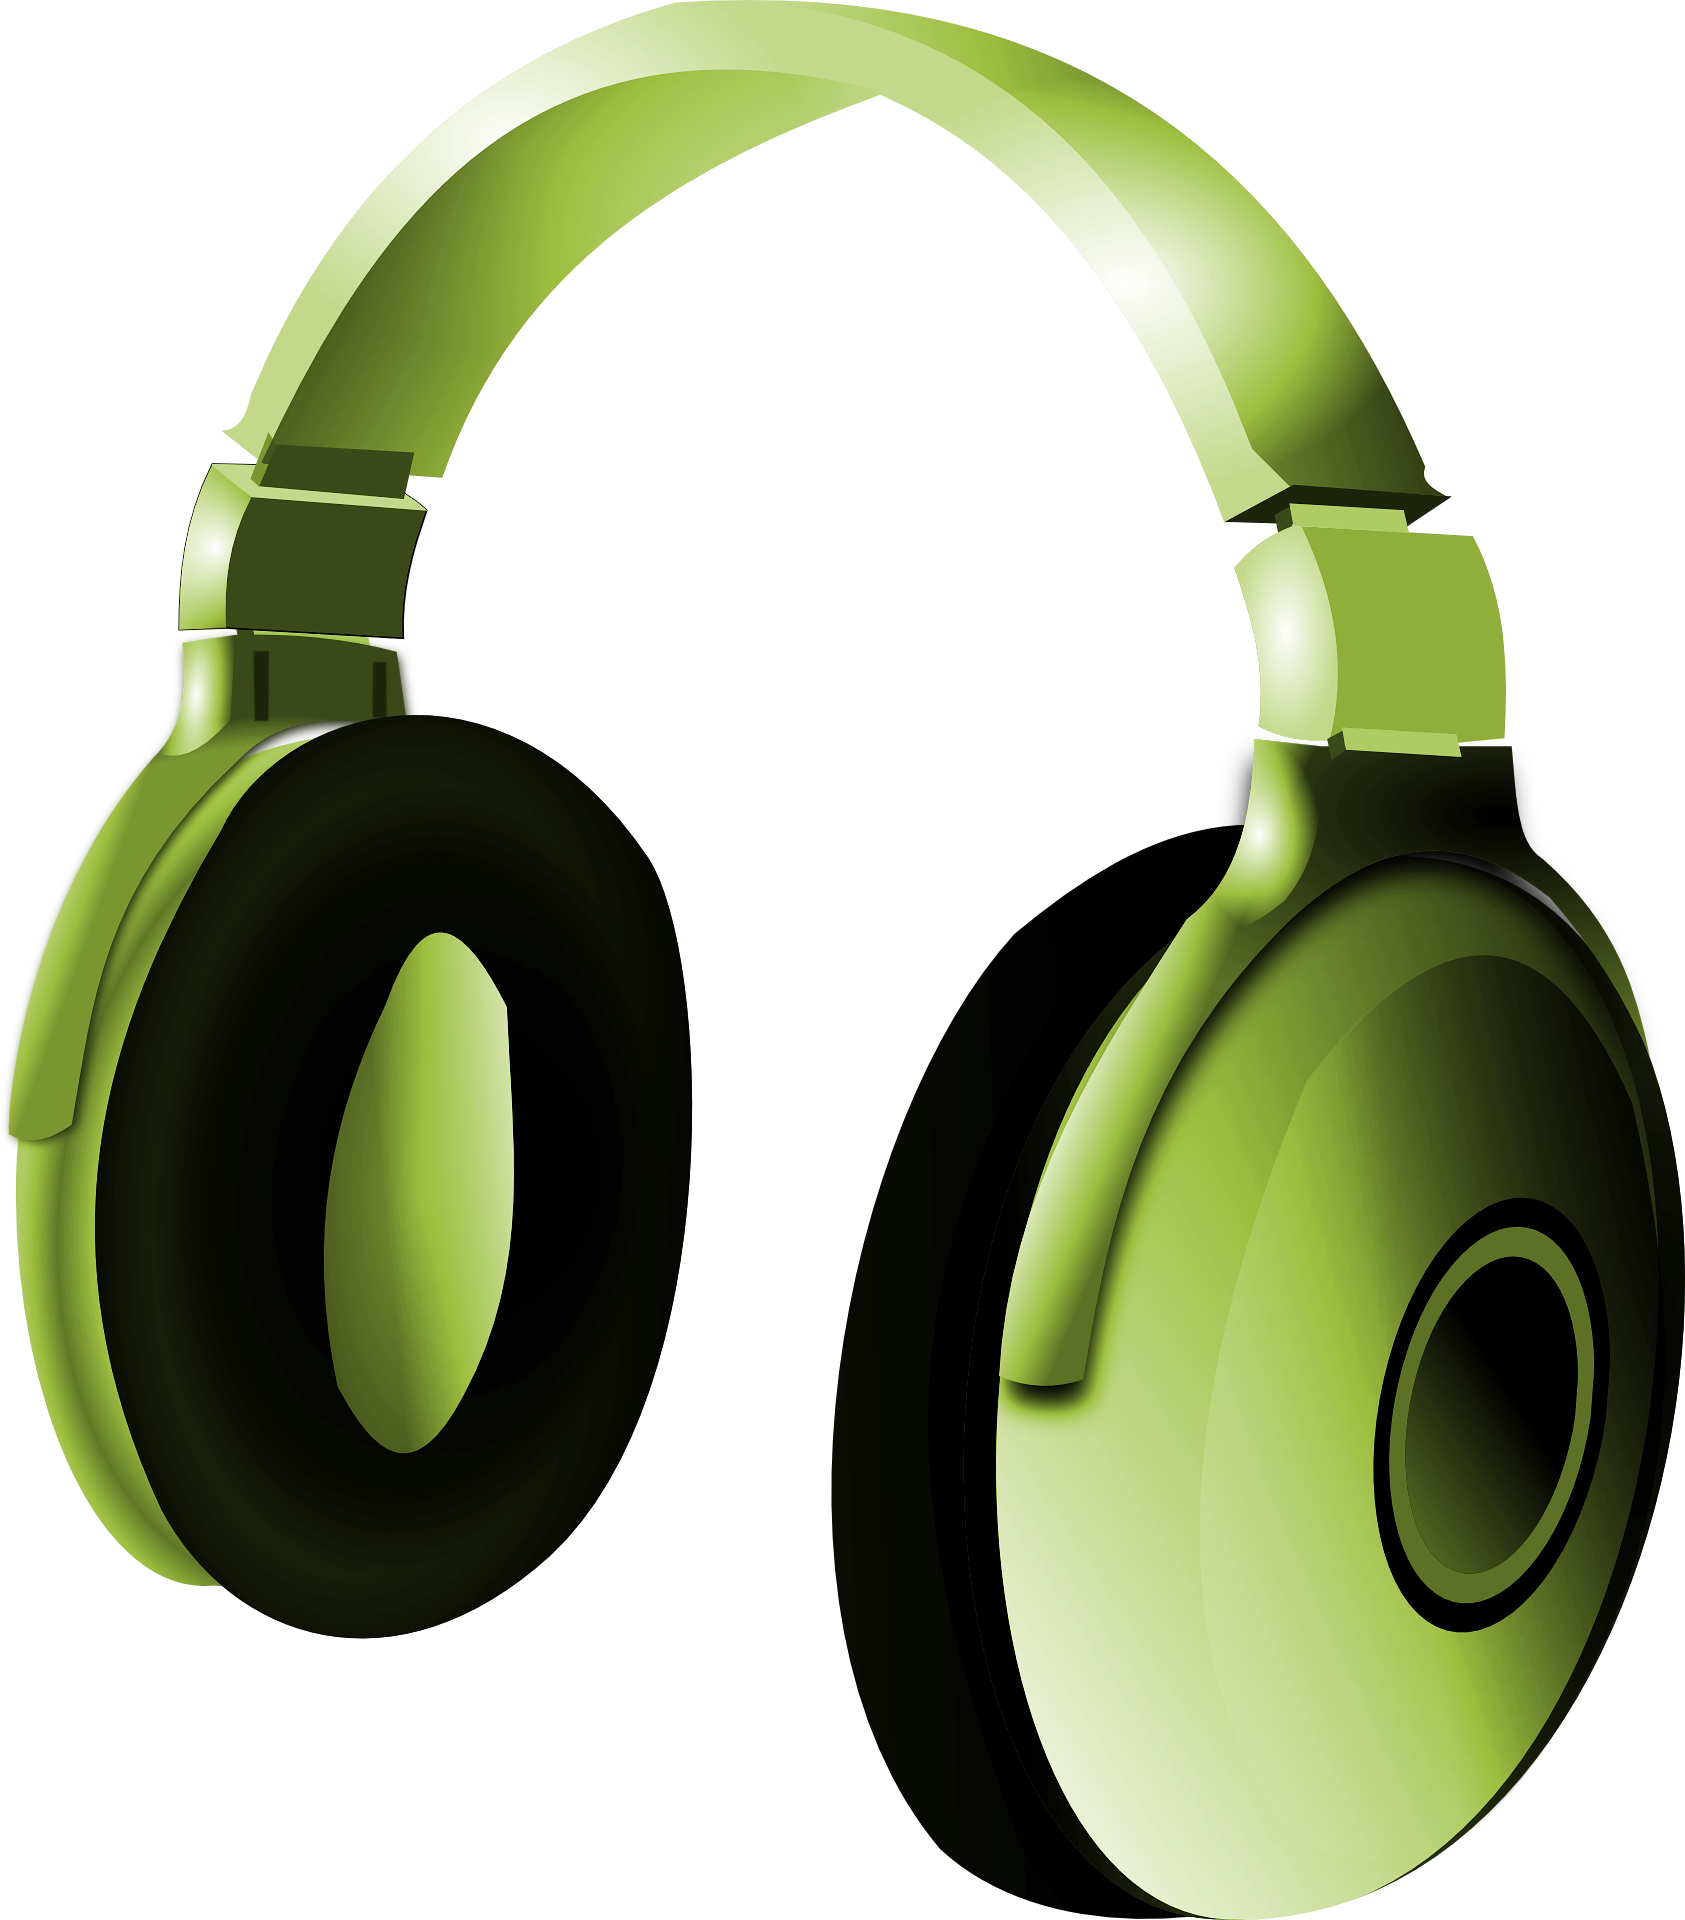 [Freebie] Vector of headphones on transparent background